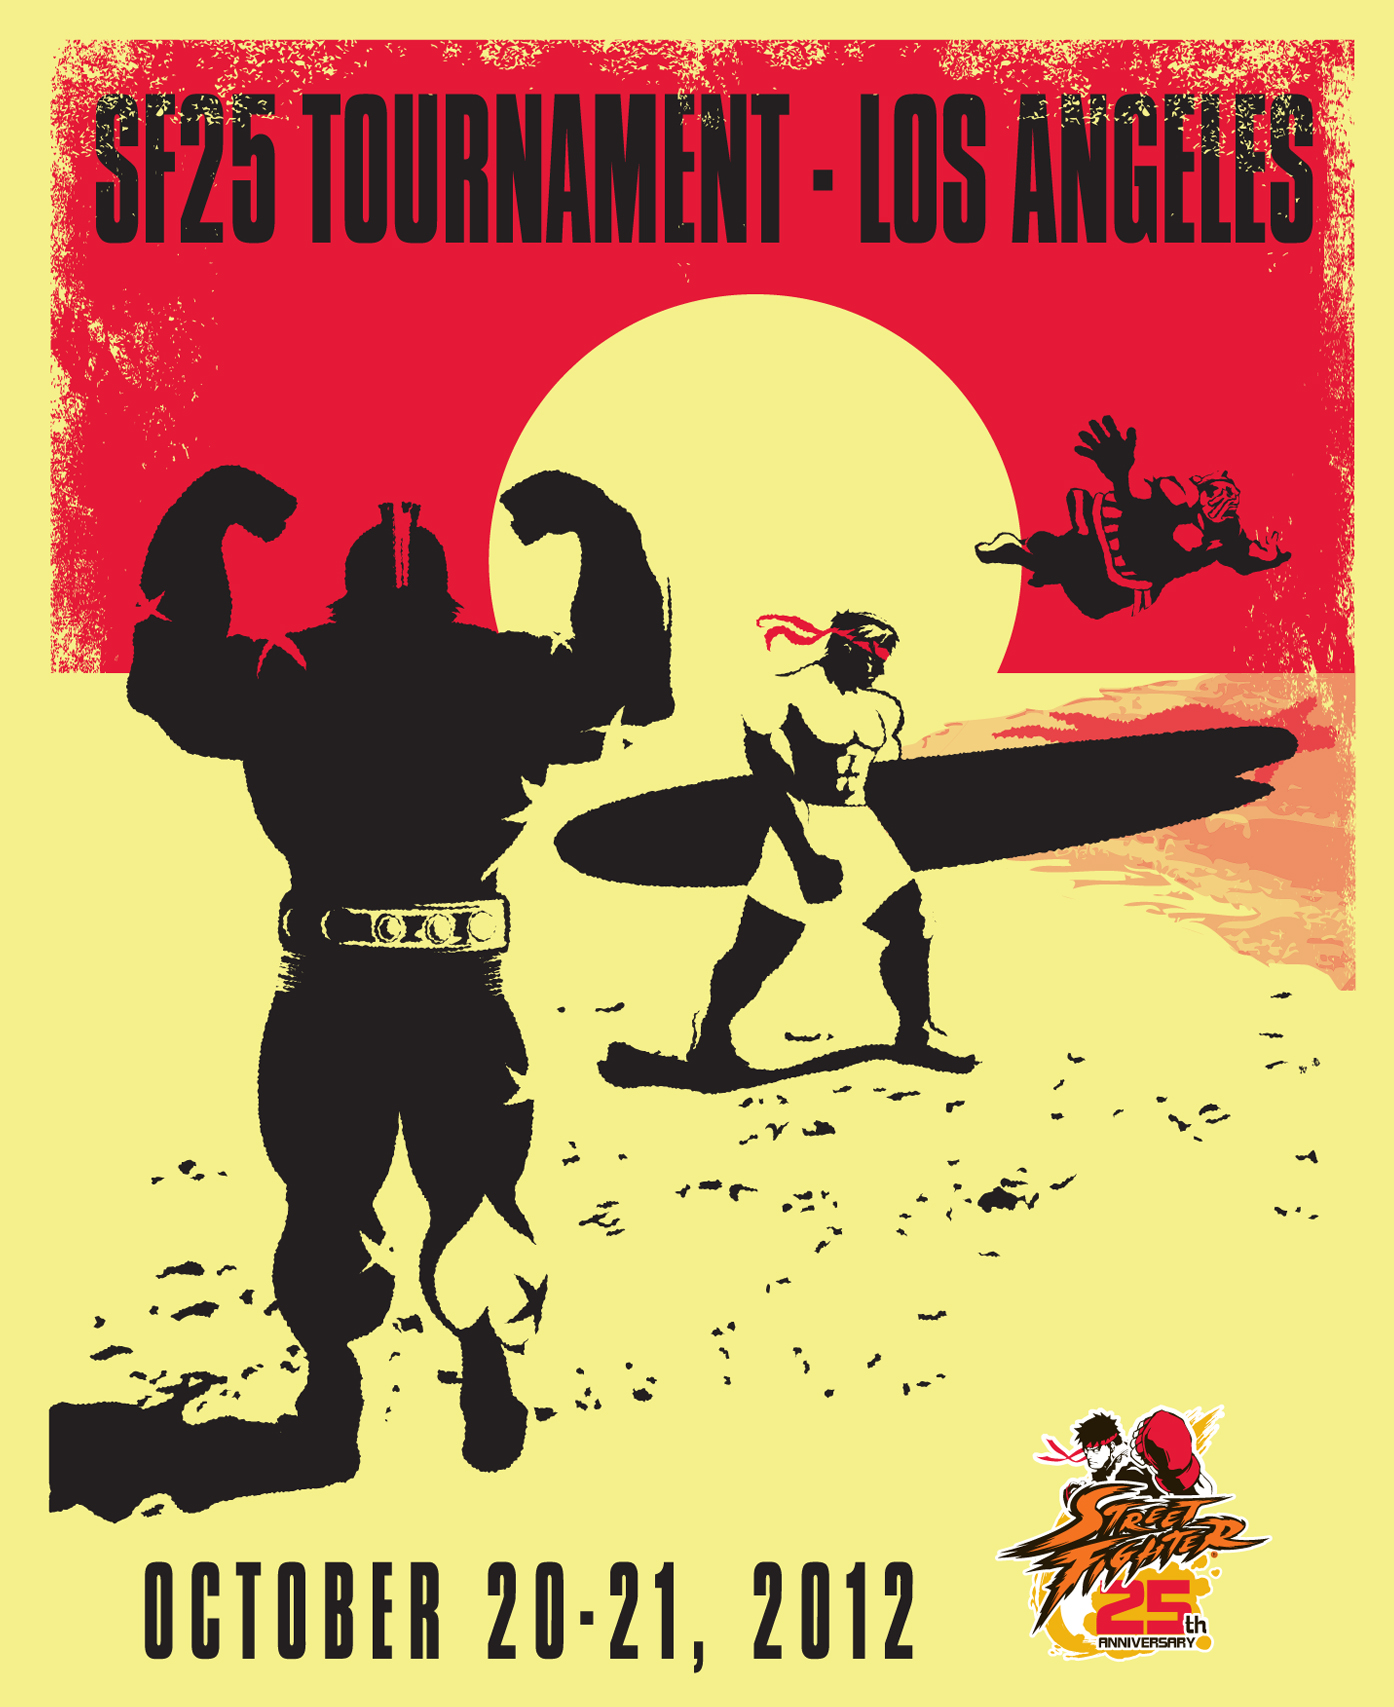 LA Tournament Tee 2 ART